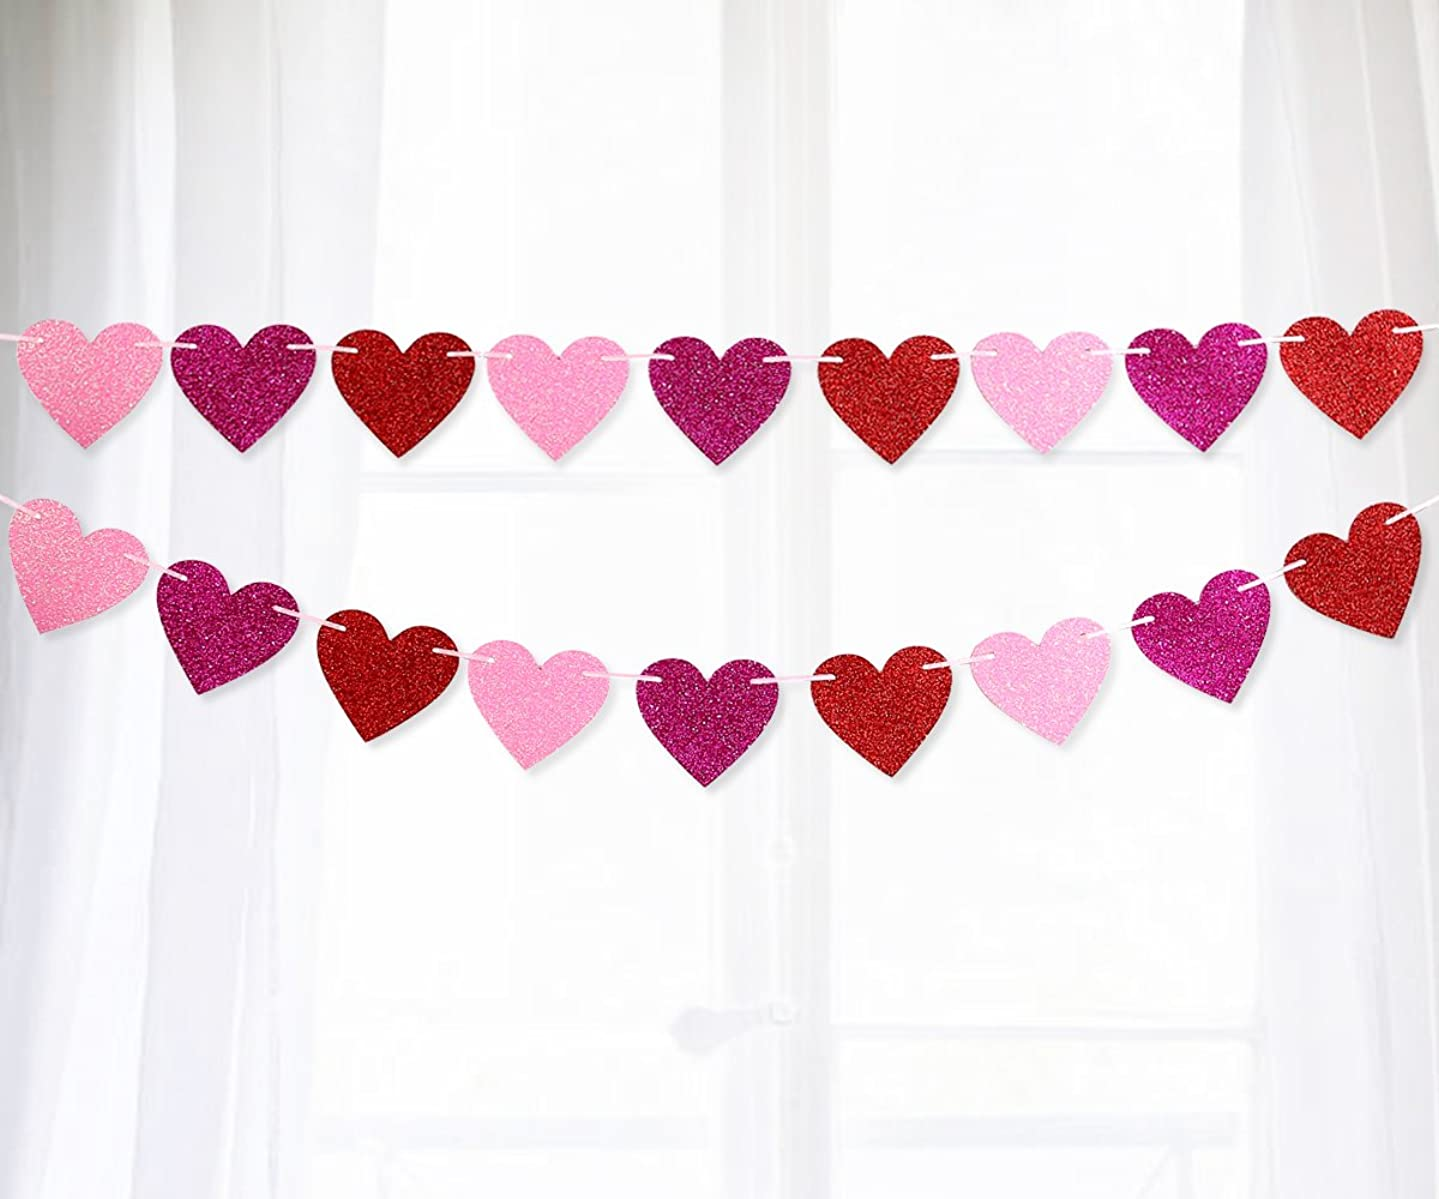 Moon Boat Glitter Heart Garland Ribbon Banner Red Pink Rosy - Valentine's Day Wedding Party Decorations Ornaments